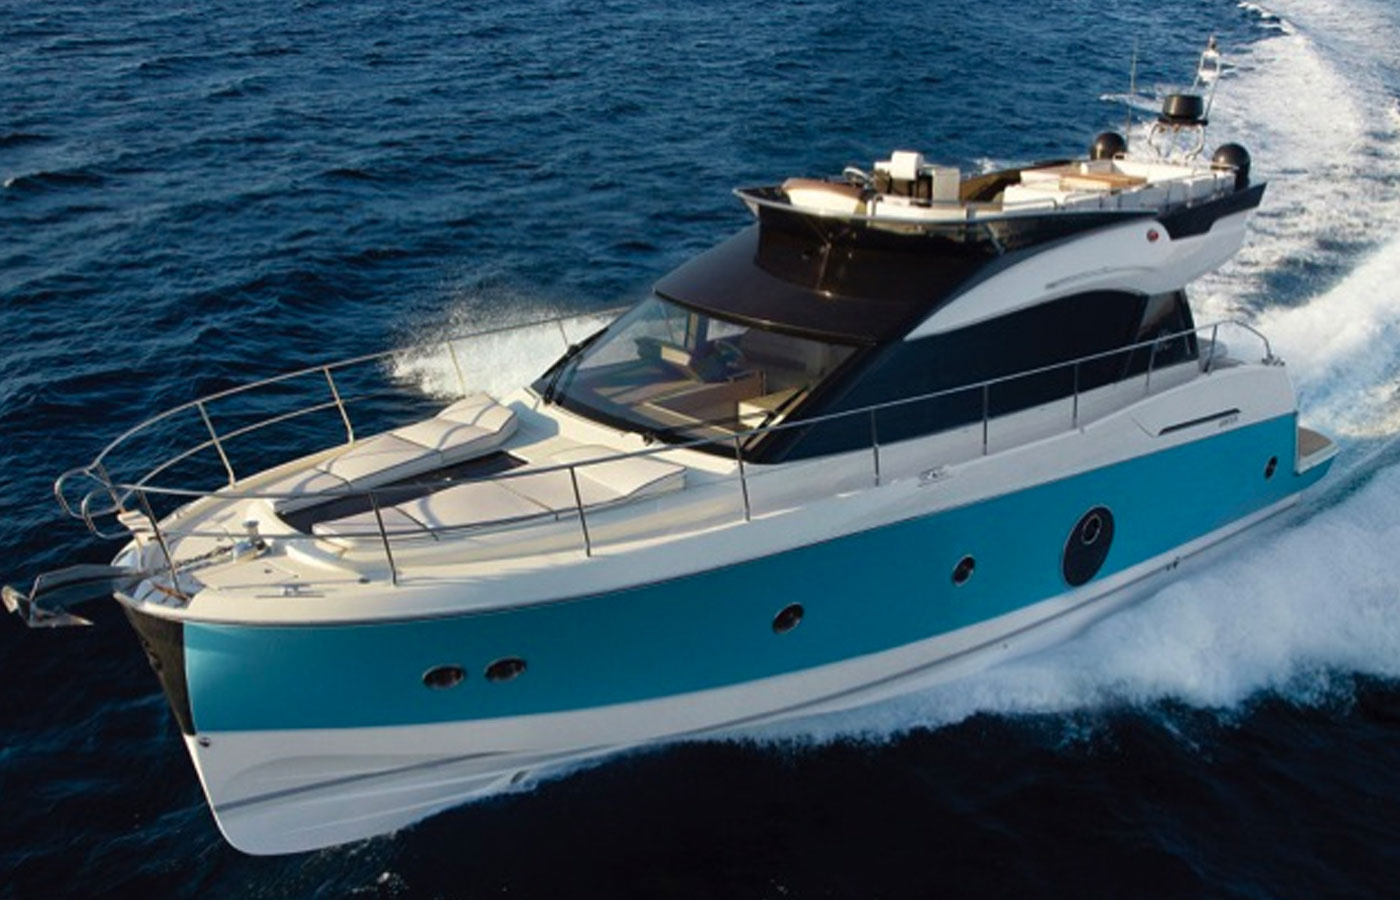 Beneteau Monte Carlo 5: Italian Styling Never Looked So Good